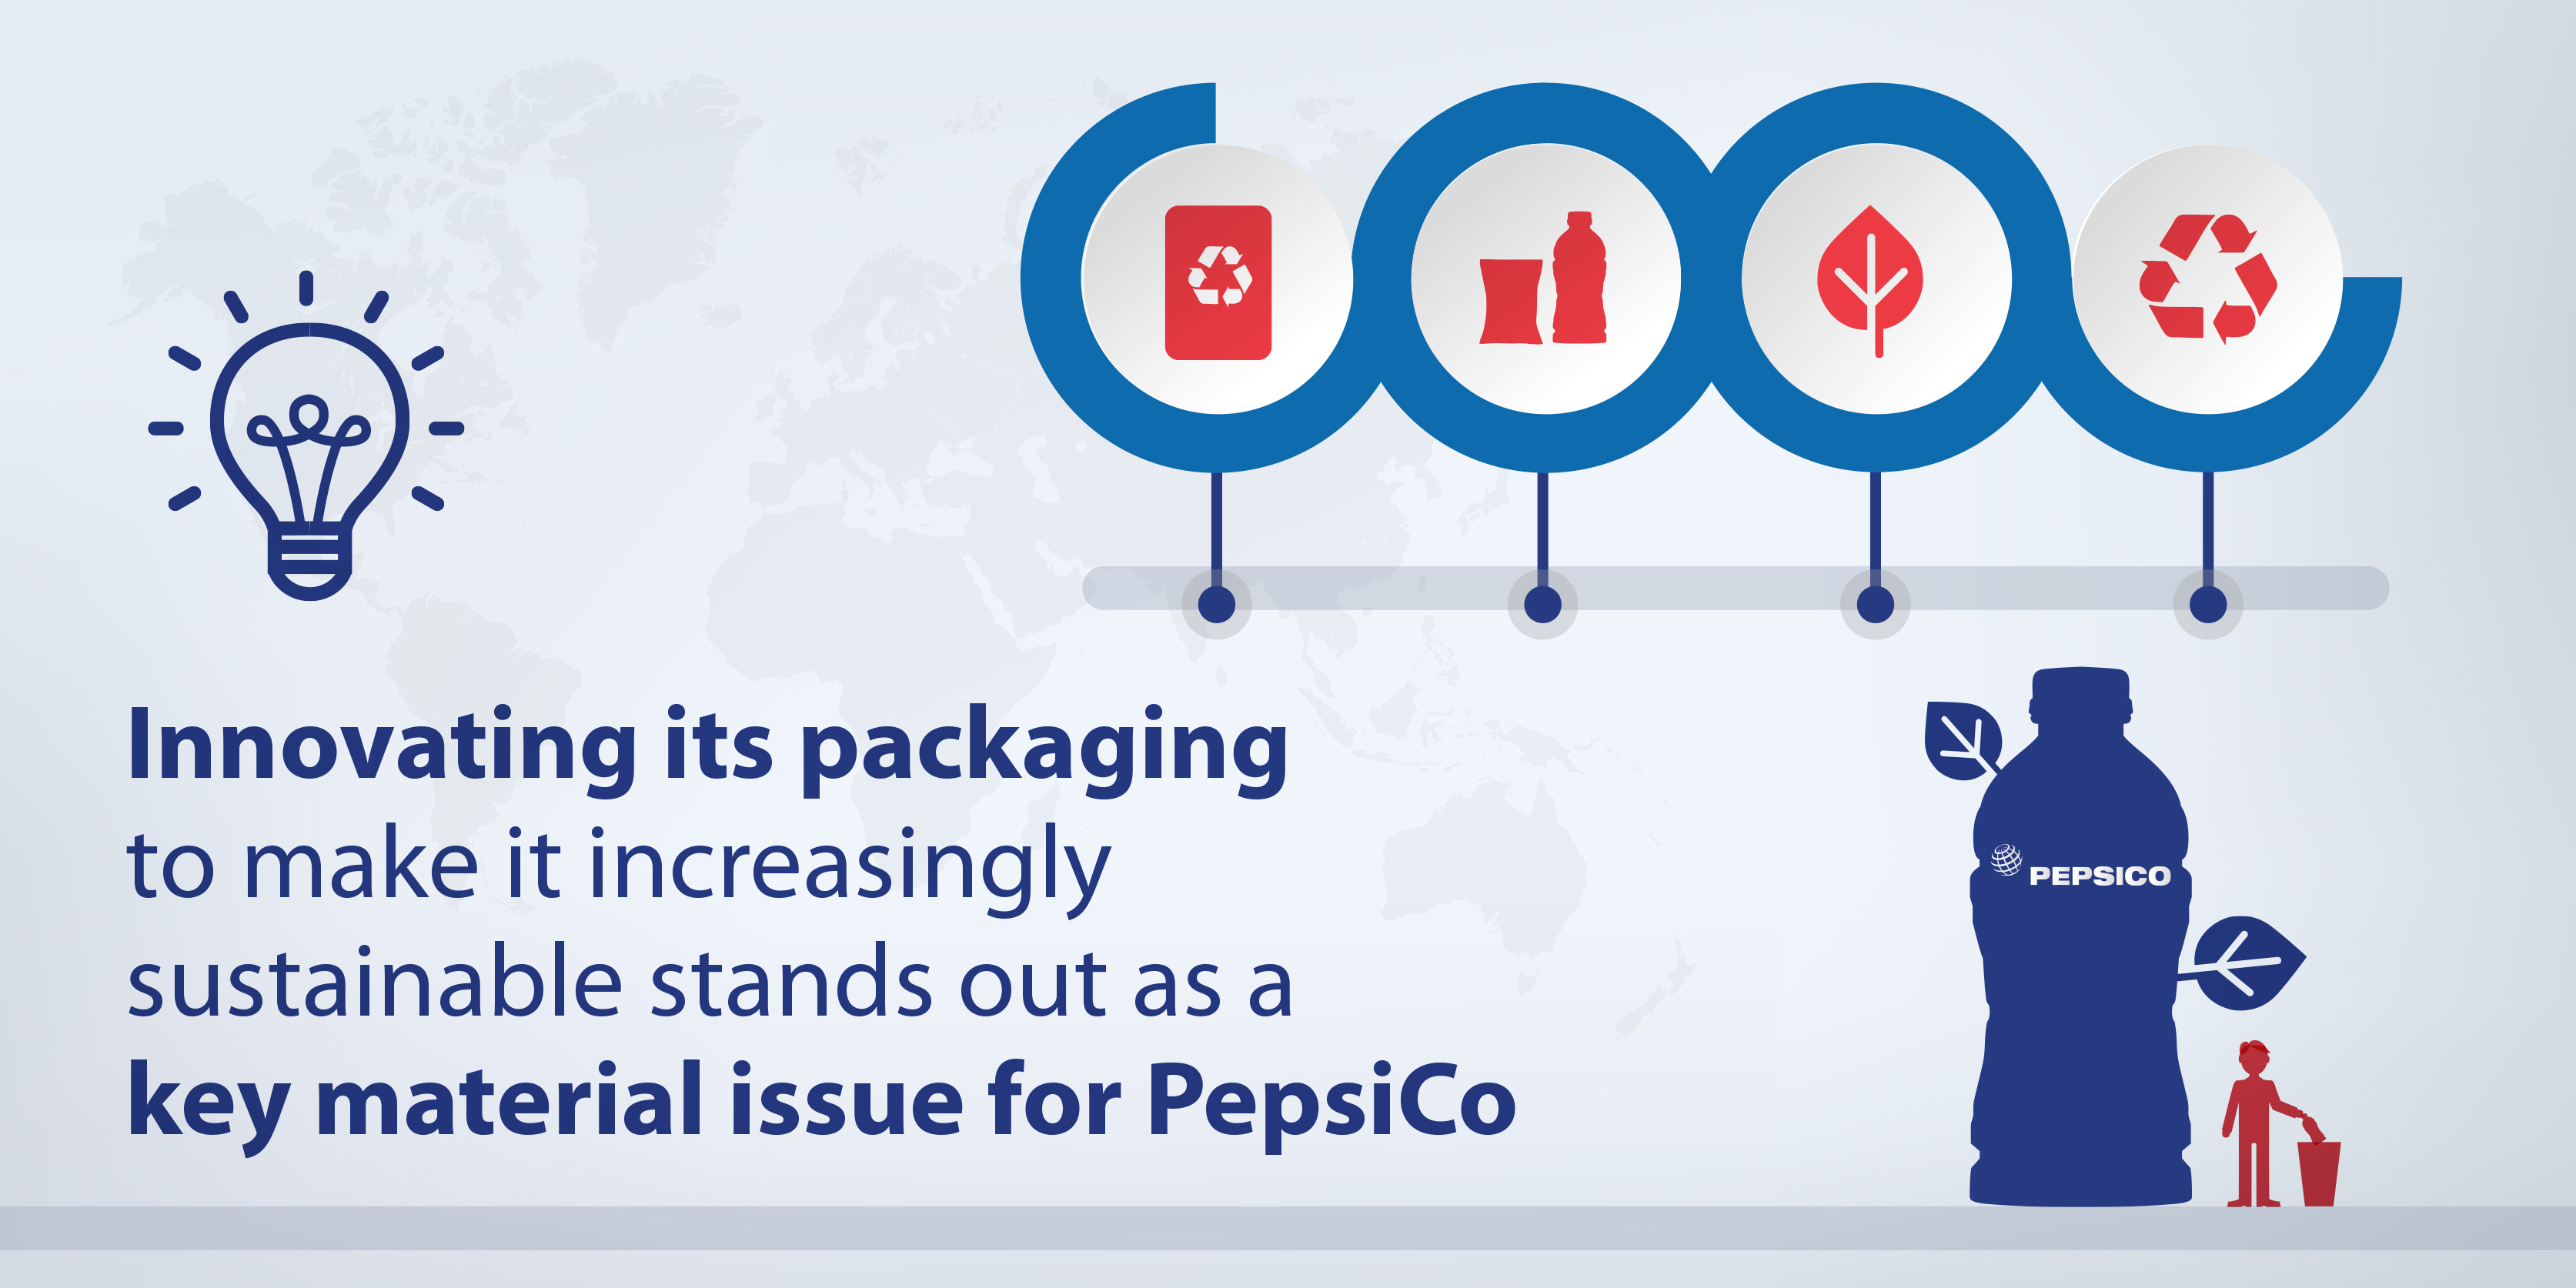 How PepsiCo innovates its packaging to make it increasingly sustainable